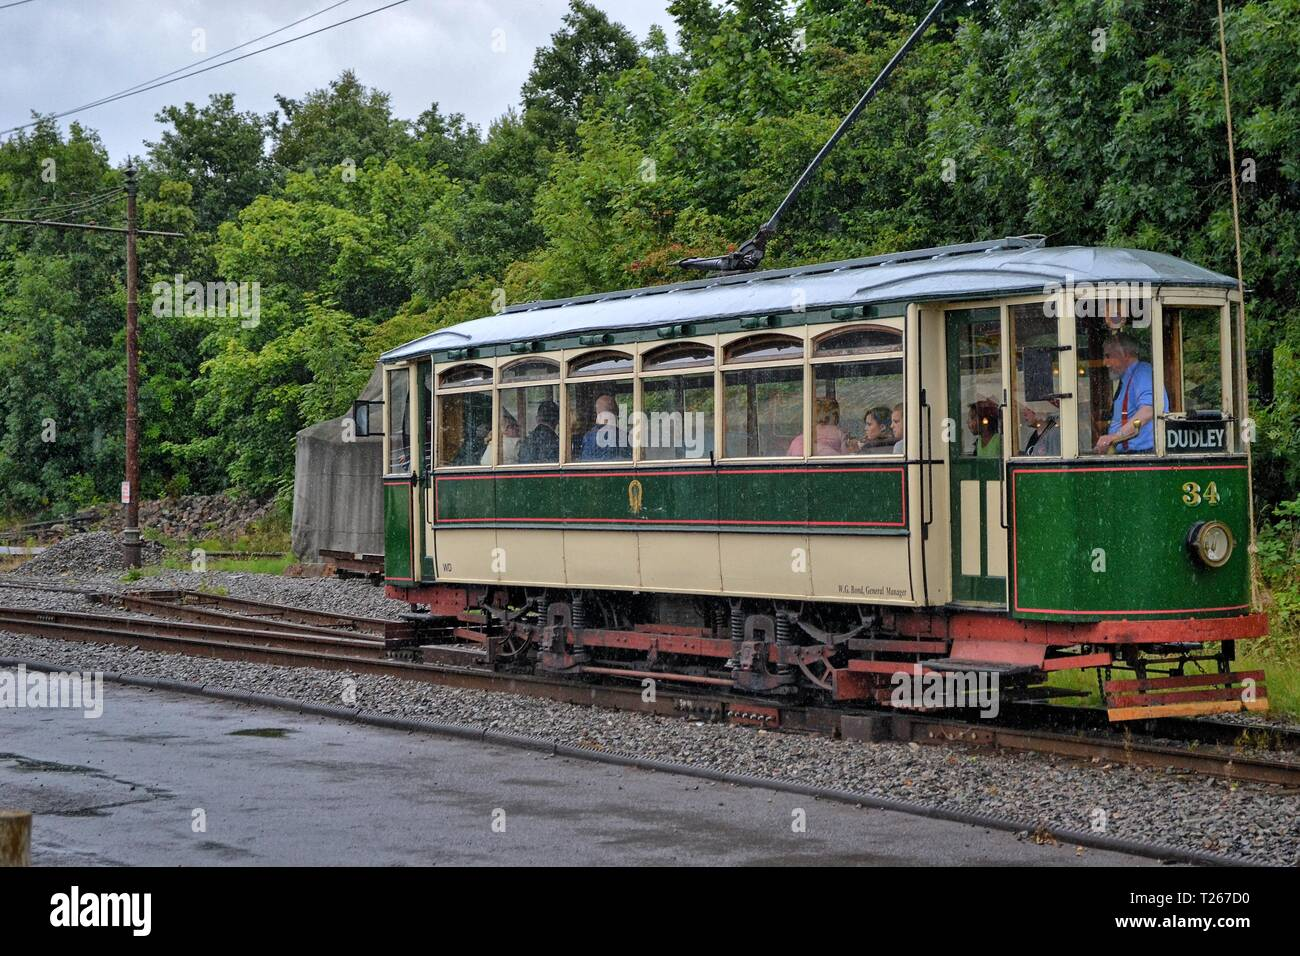 Tram at The Black Country Living Museum, an open-air museum of rebuilt historic buildings in Dudley, West Midlands, England, UK - Stock Image